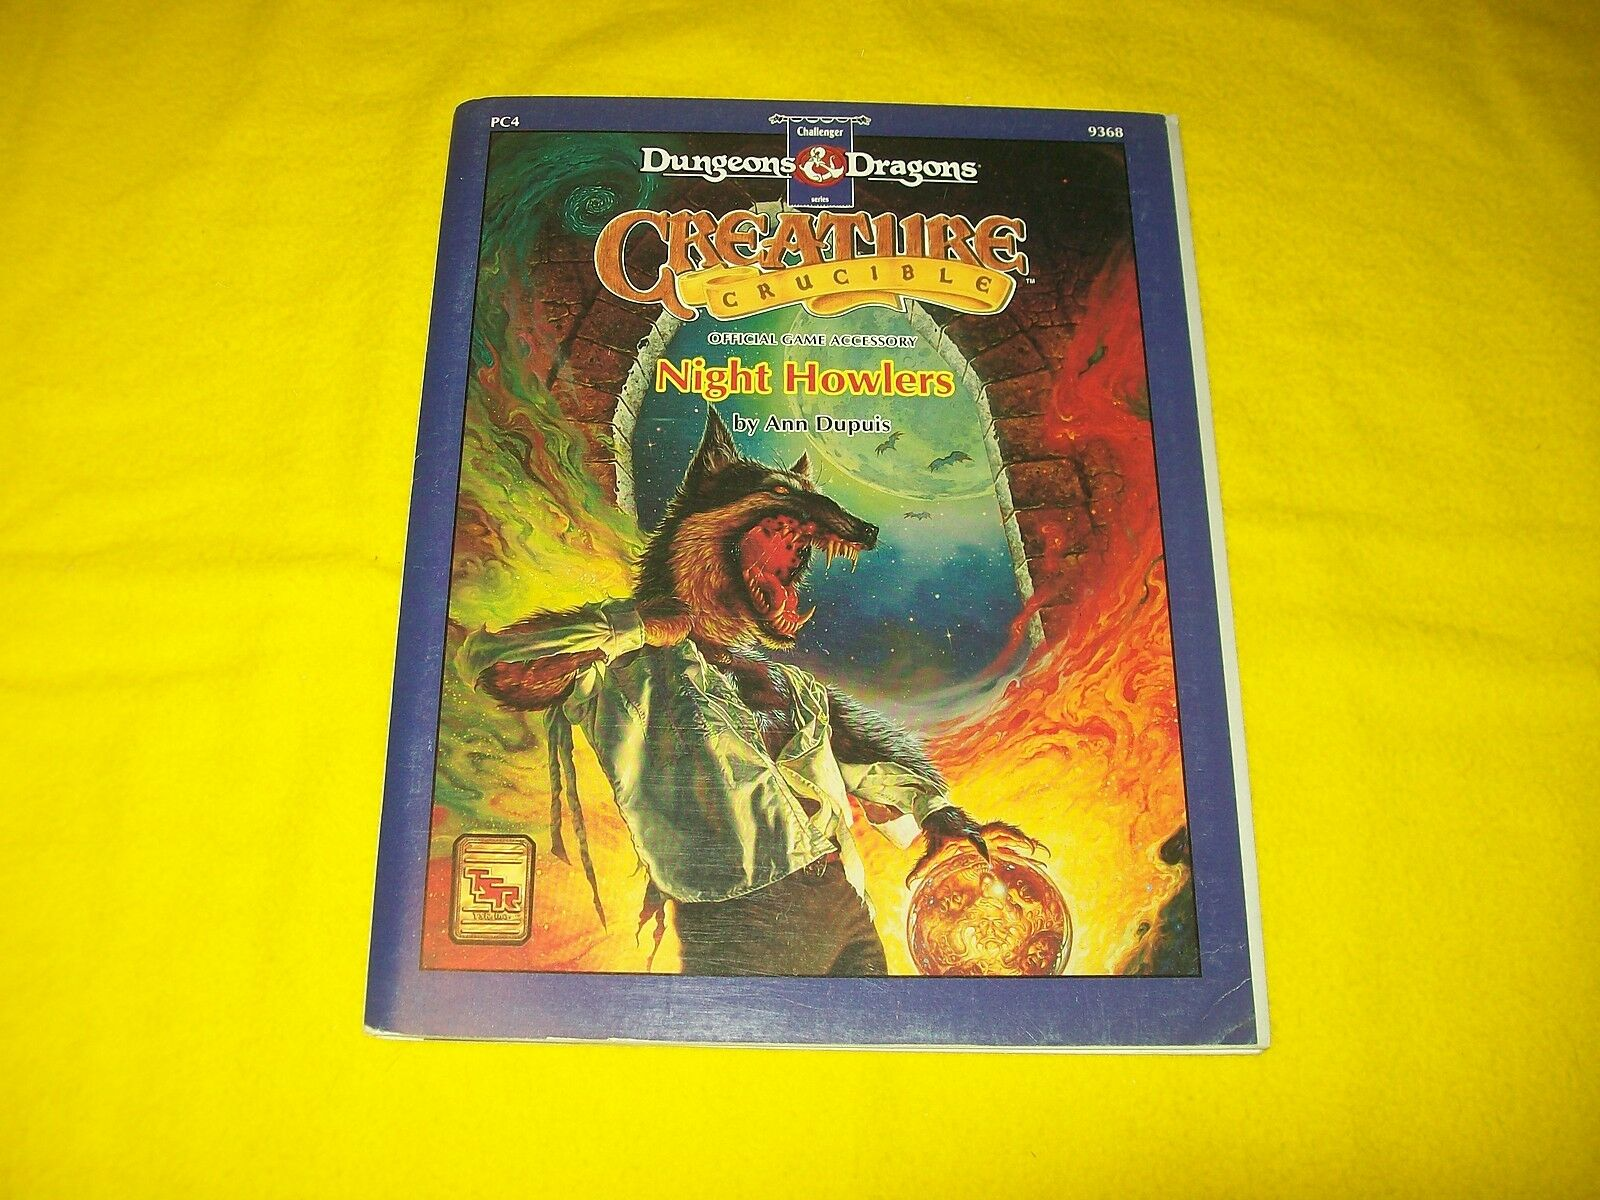 PC4 NIGHT HOWLERS DUNGEONS & DRAGONS CHALLENGER SERIES CREATURE CRUCIBLE 9368 -1